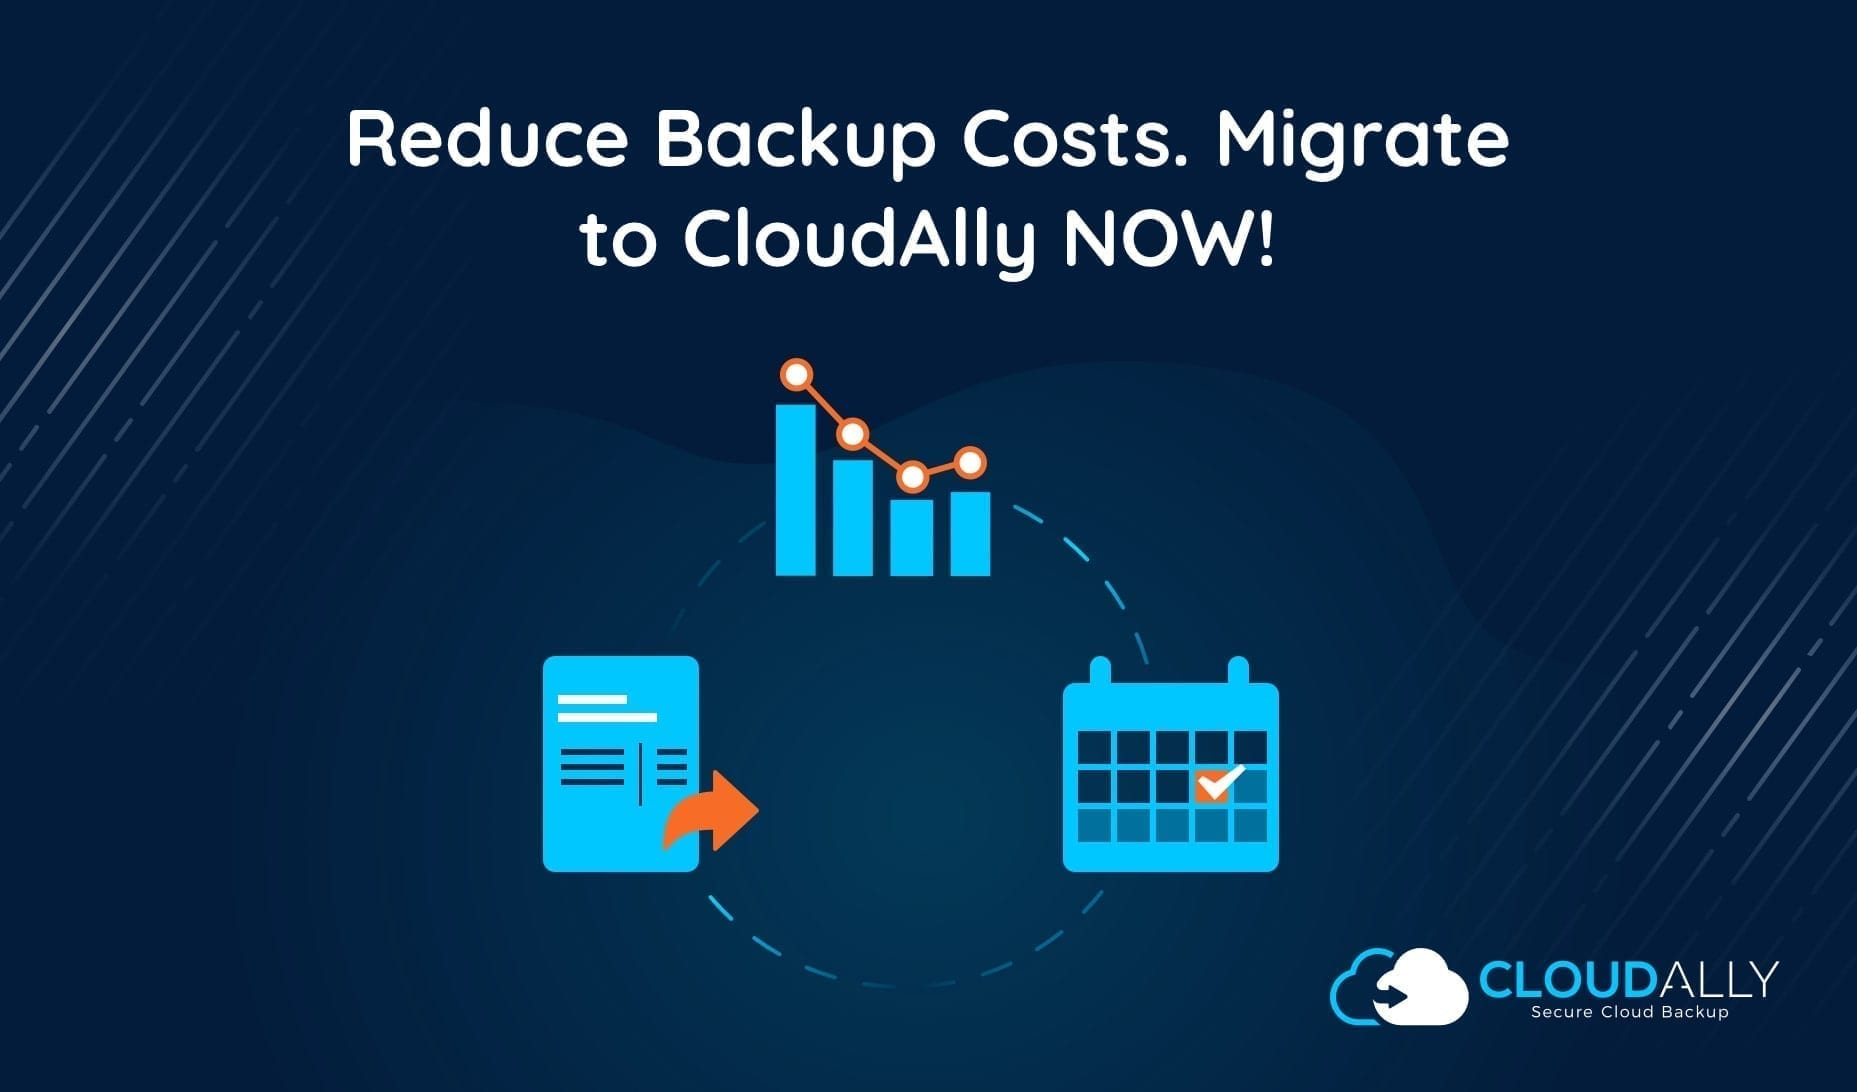 Migrate to CloudAlly Reduce Backup Costs